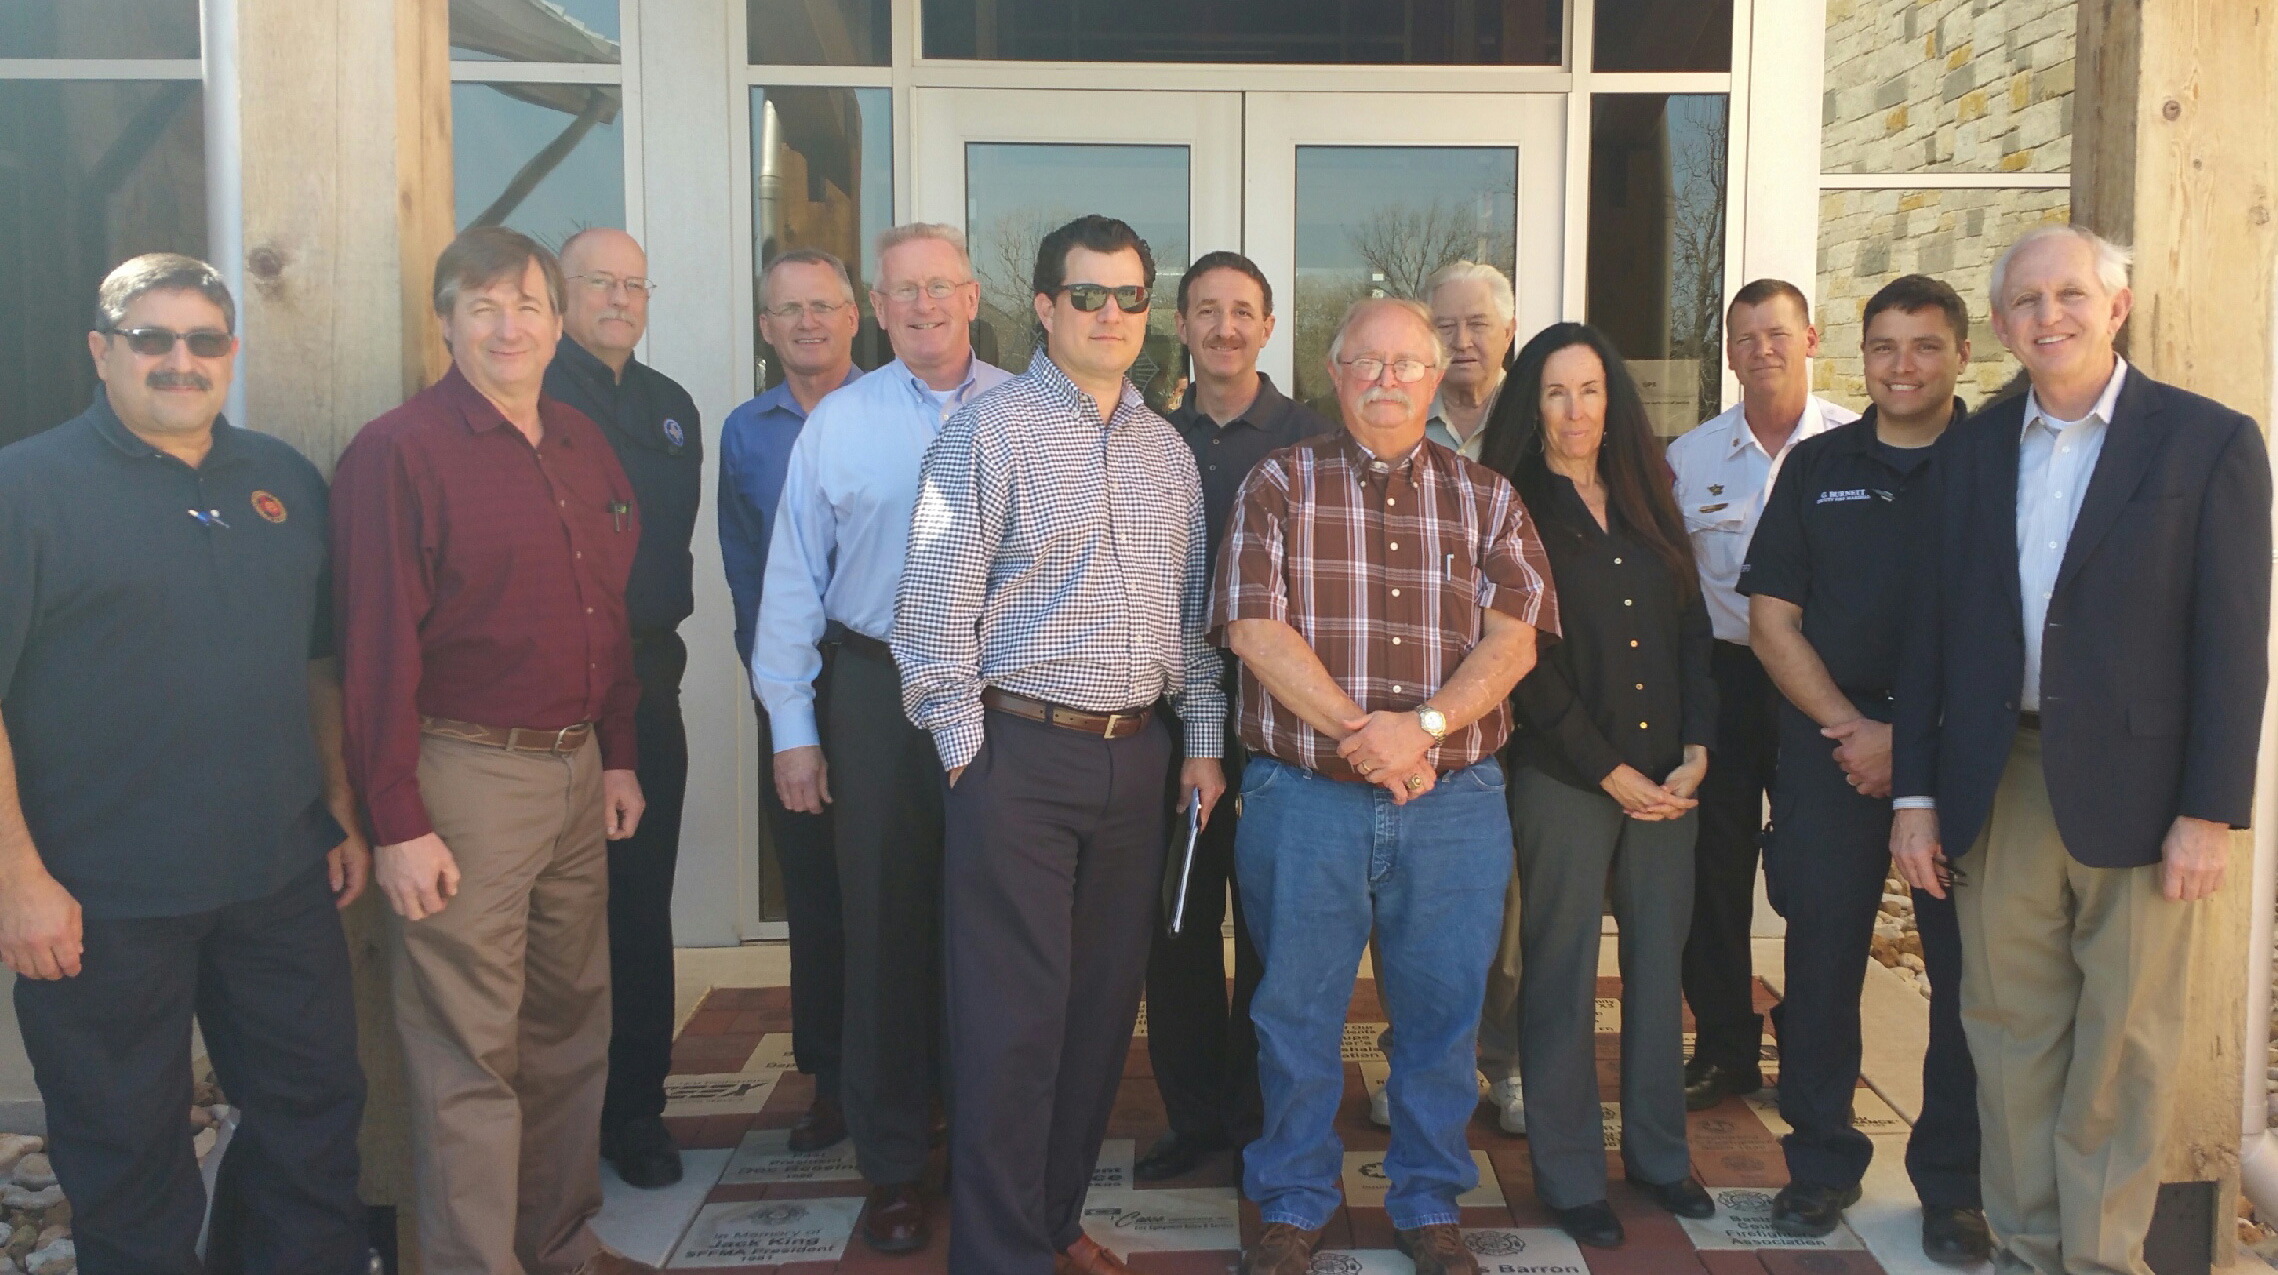 Members of the Texas Fire Sprinkler Coalition